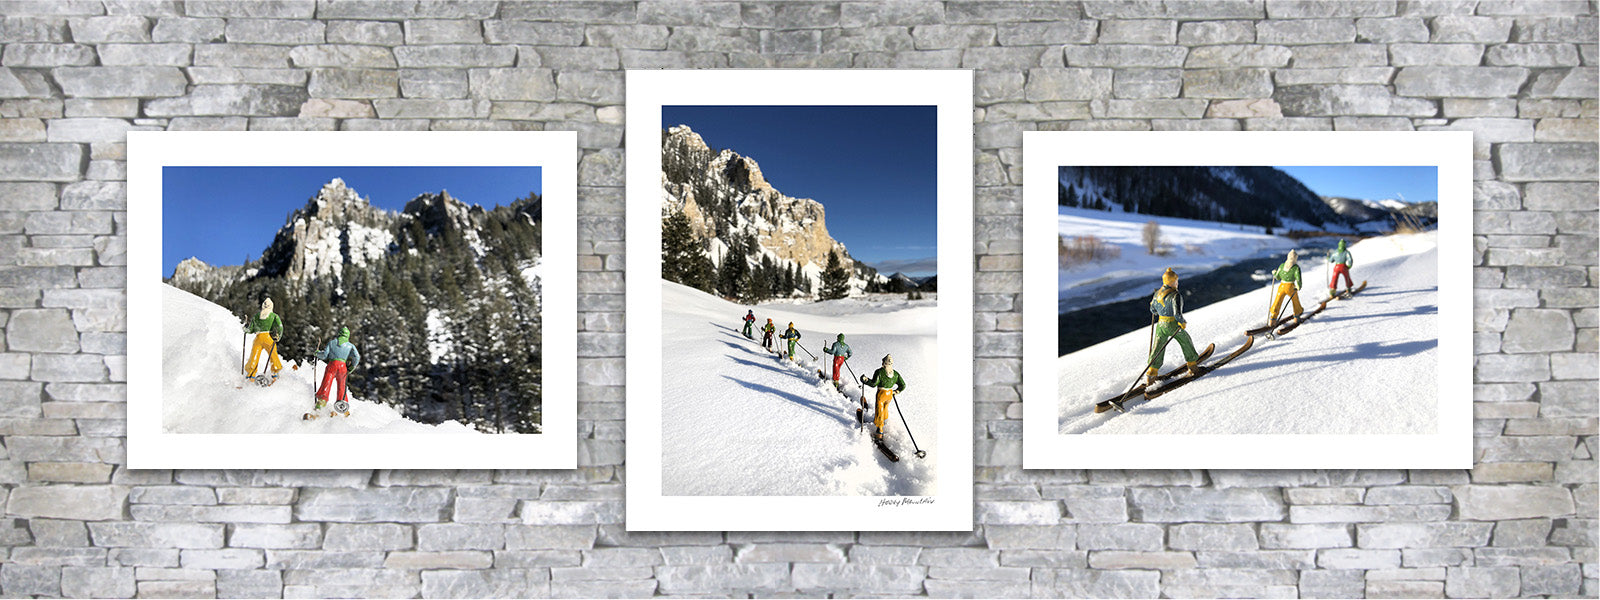 vintage toy skier photo pairing by Hooey Mountain